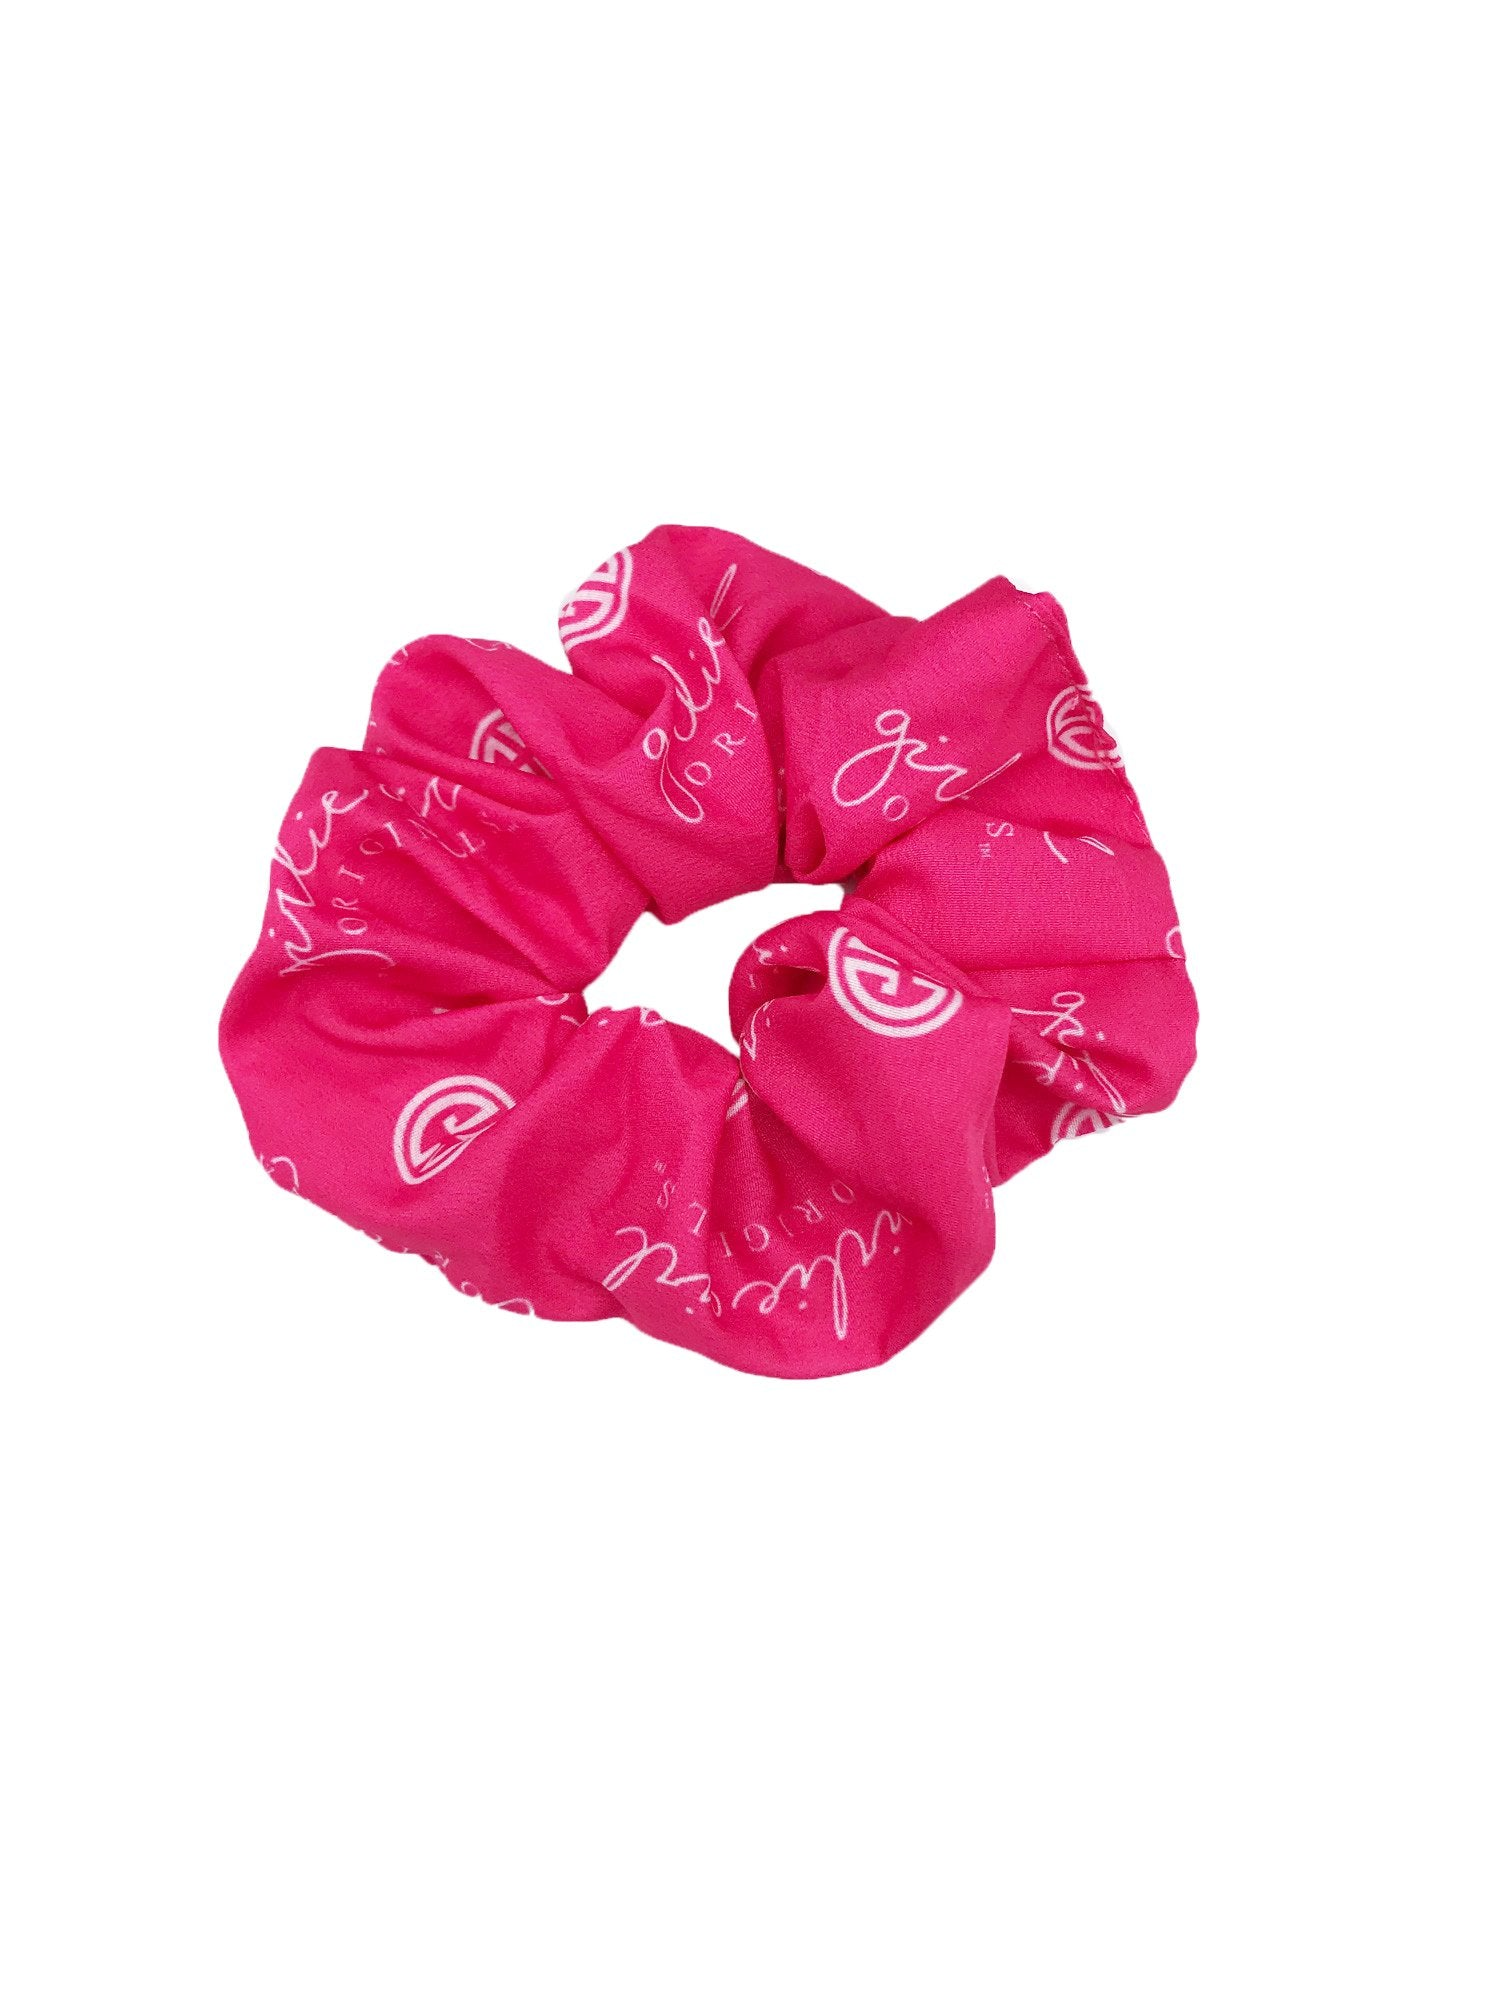 SCR-23-GGO Hot Pink Scrunchies